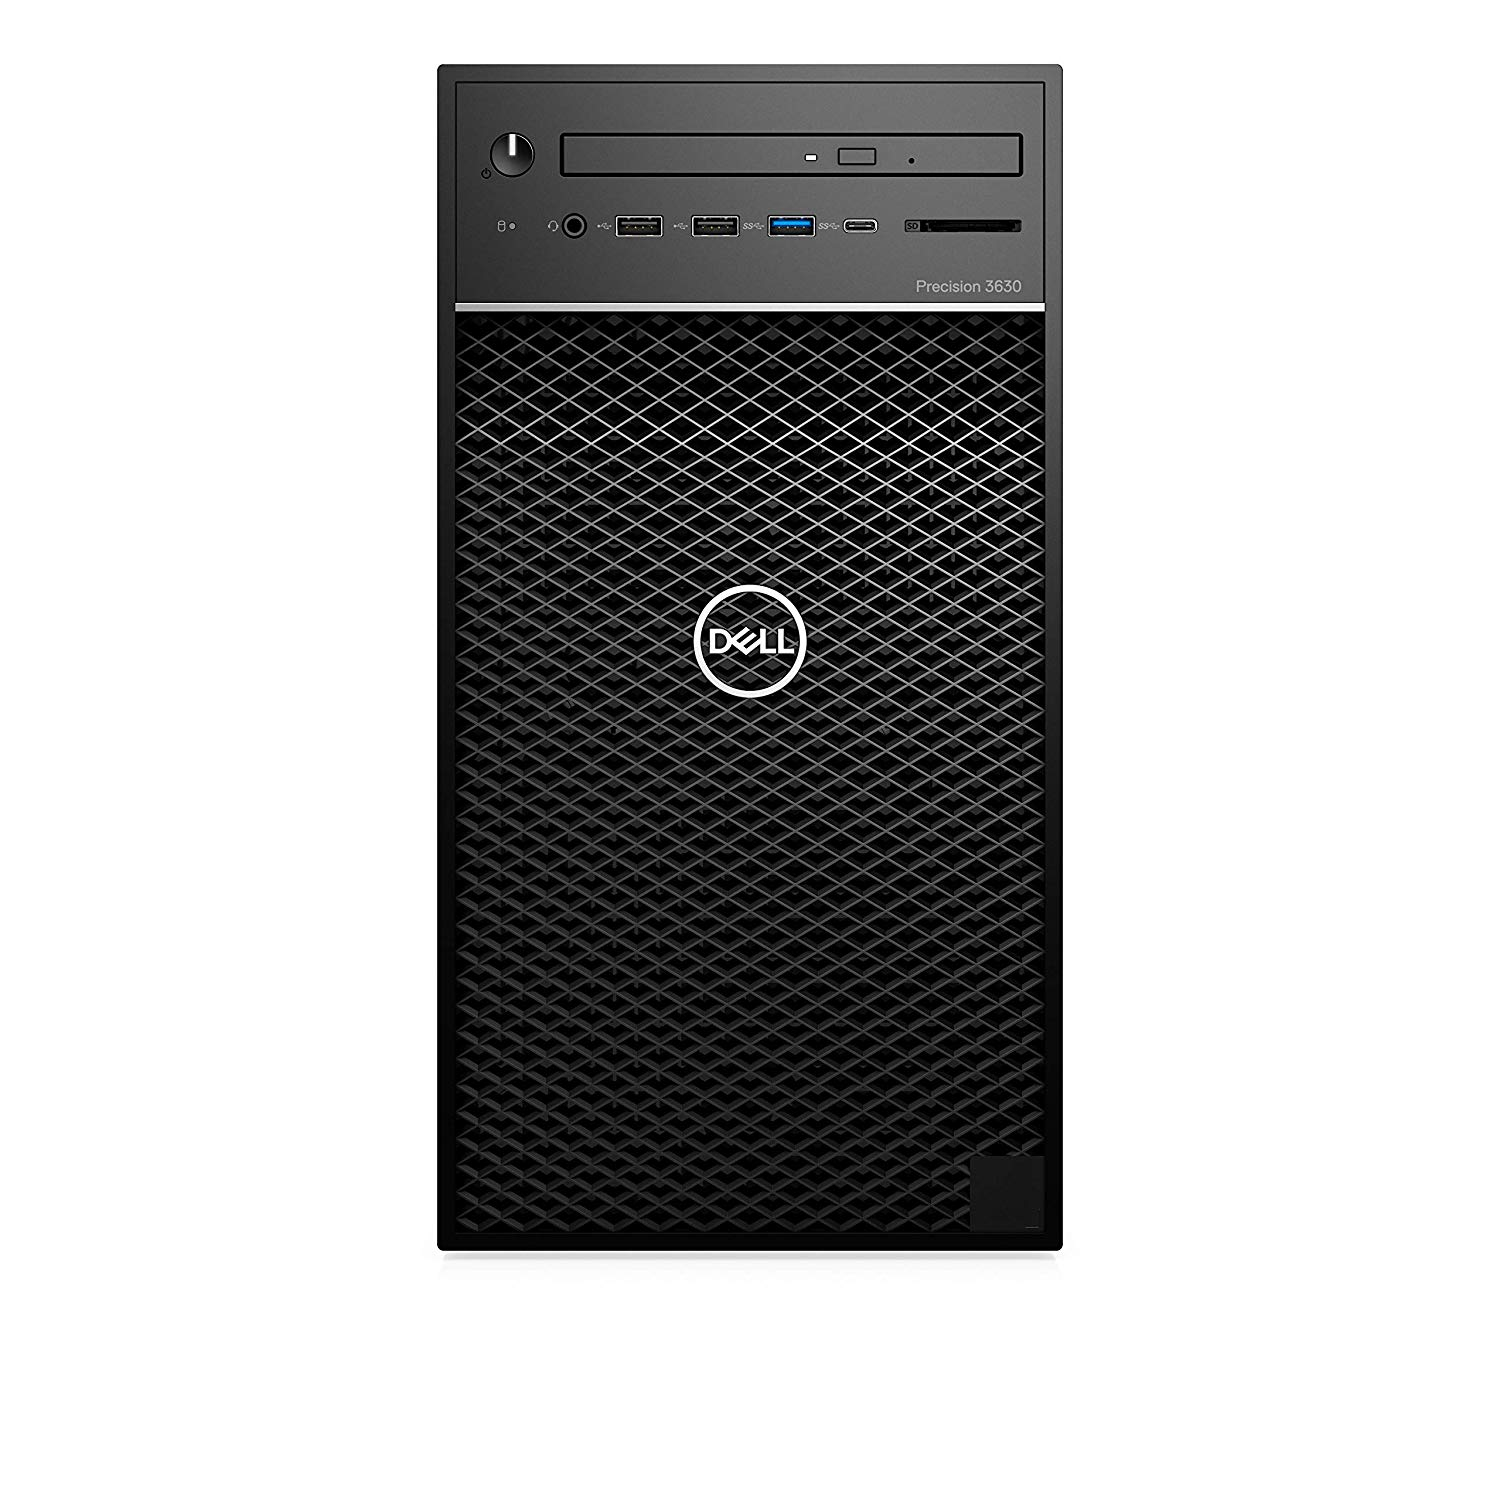 Preci 3630 i7 32GB 512GB SSD 1TB HDD PC